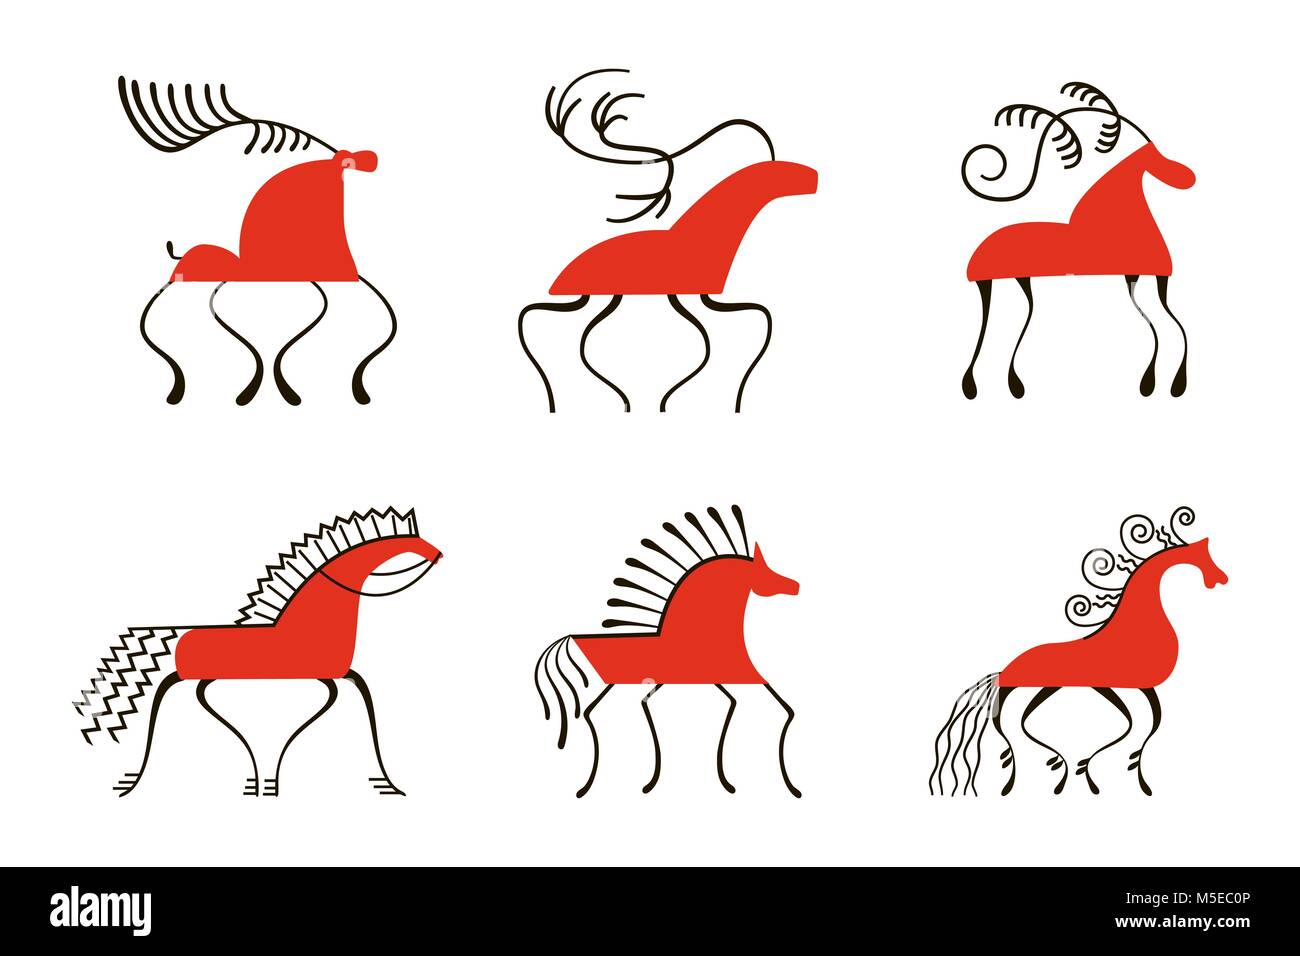 Set of six red horses. National northen paintings. Folk handicrafts. Enchanting original ornaments. Simplicity. - Stock Image